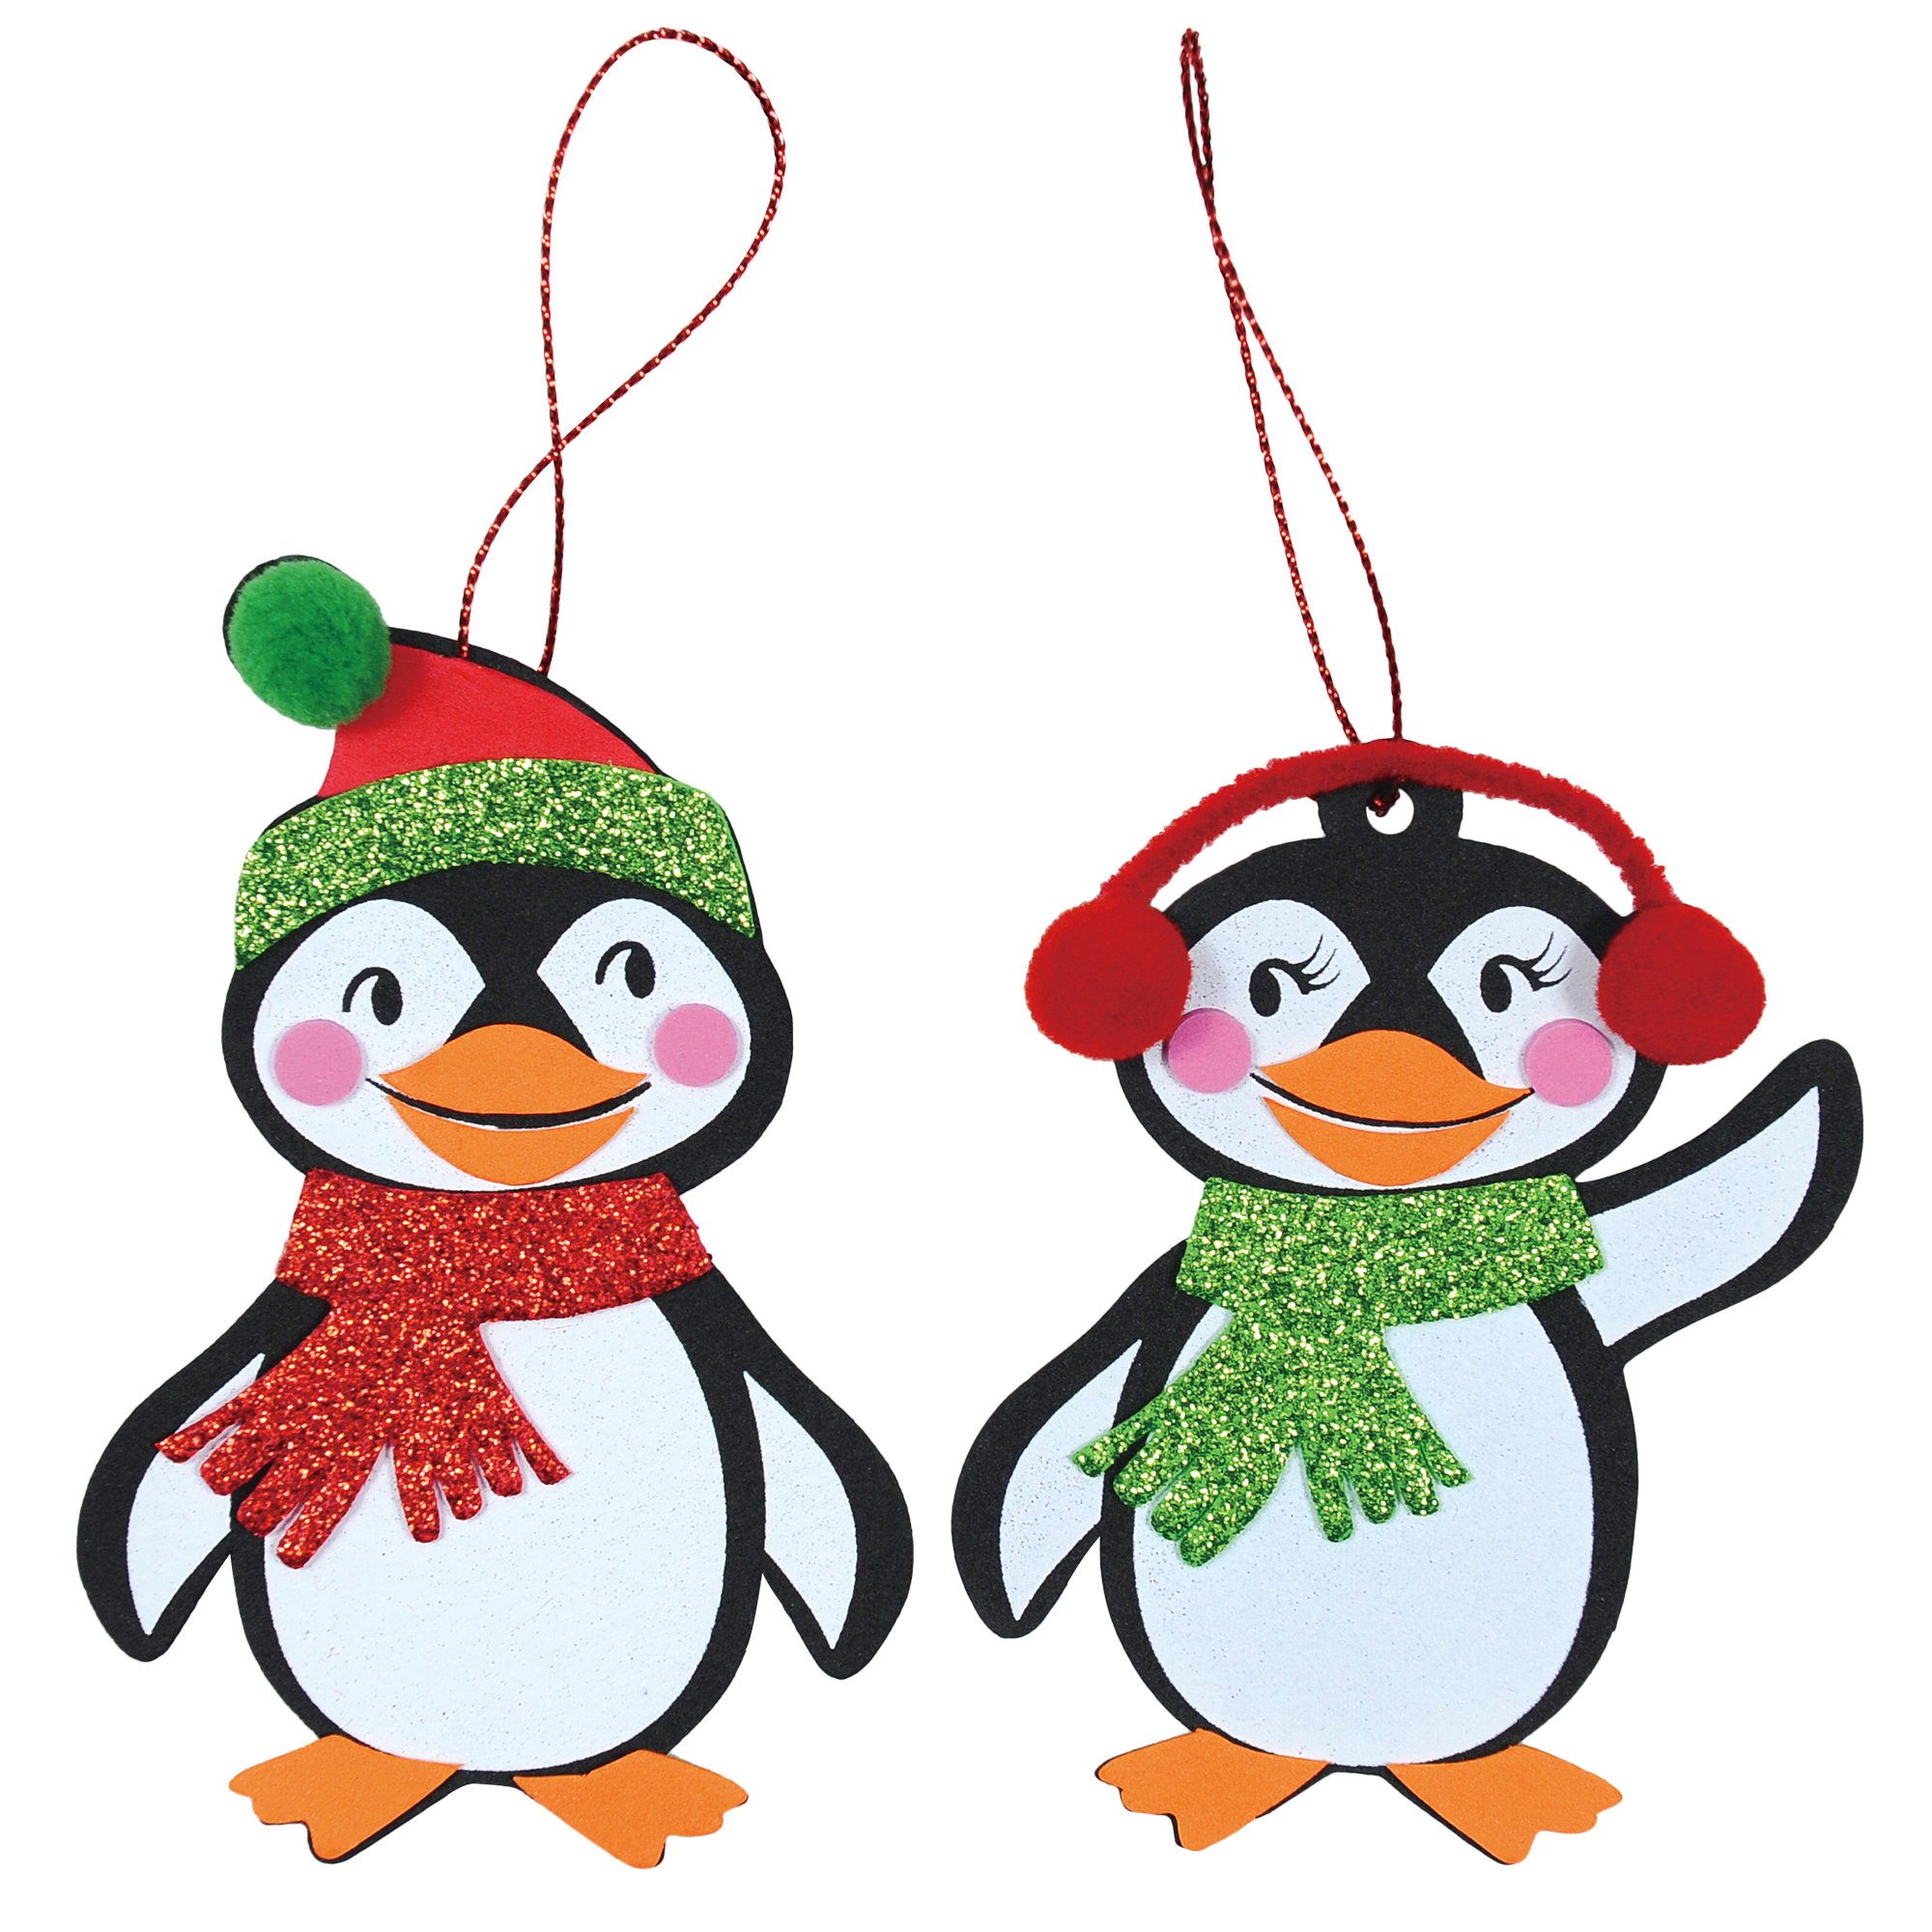 Buy the Penguin Ornaments Foam Craft Kit By Creatology™ at Michaels